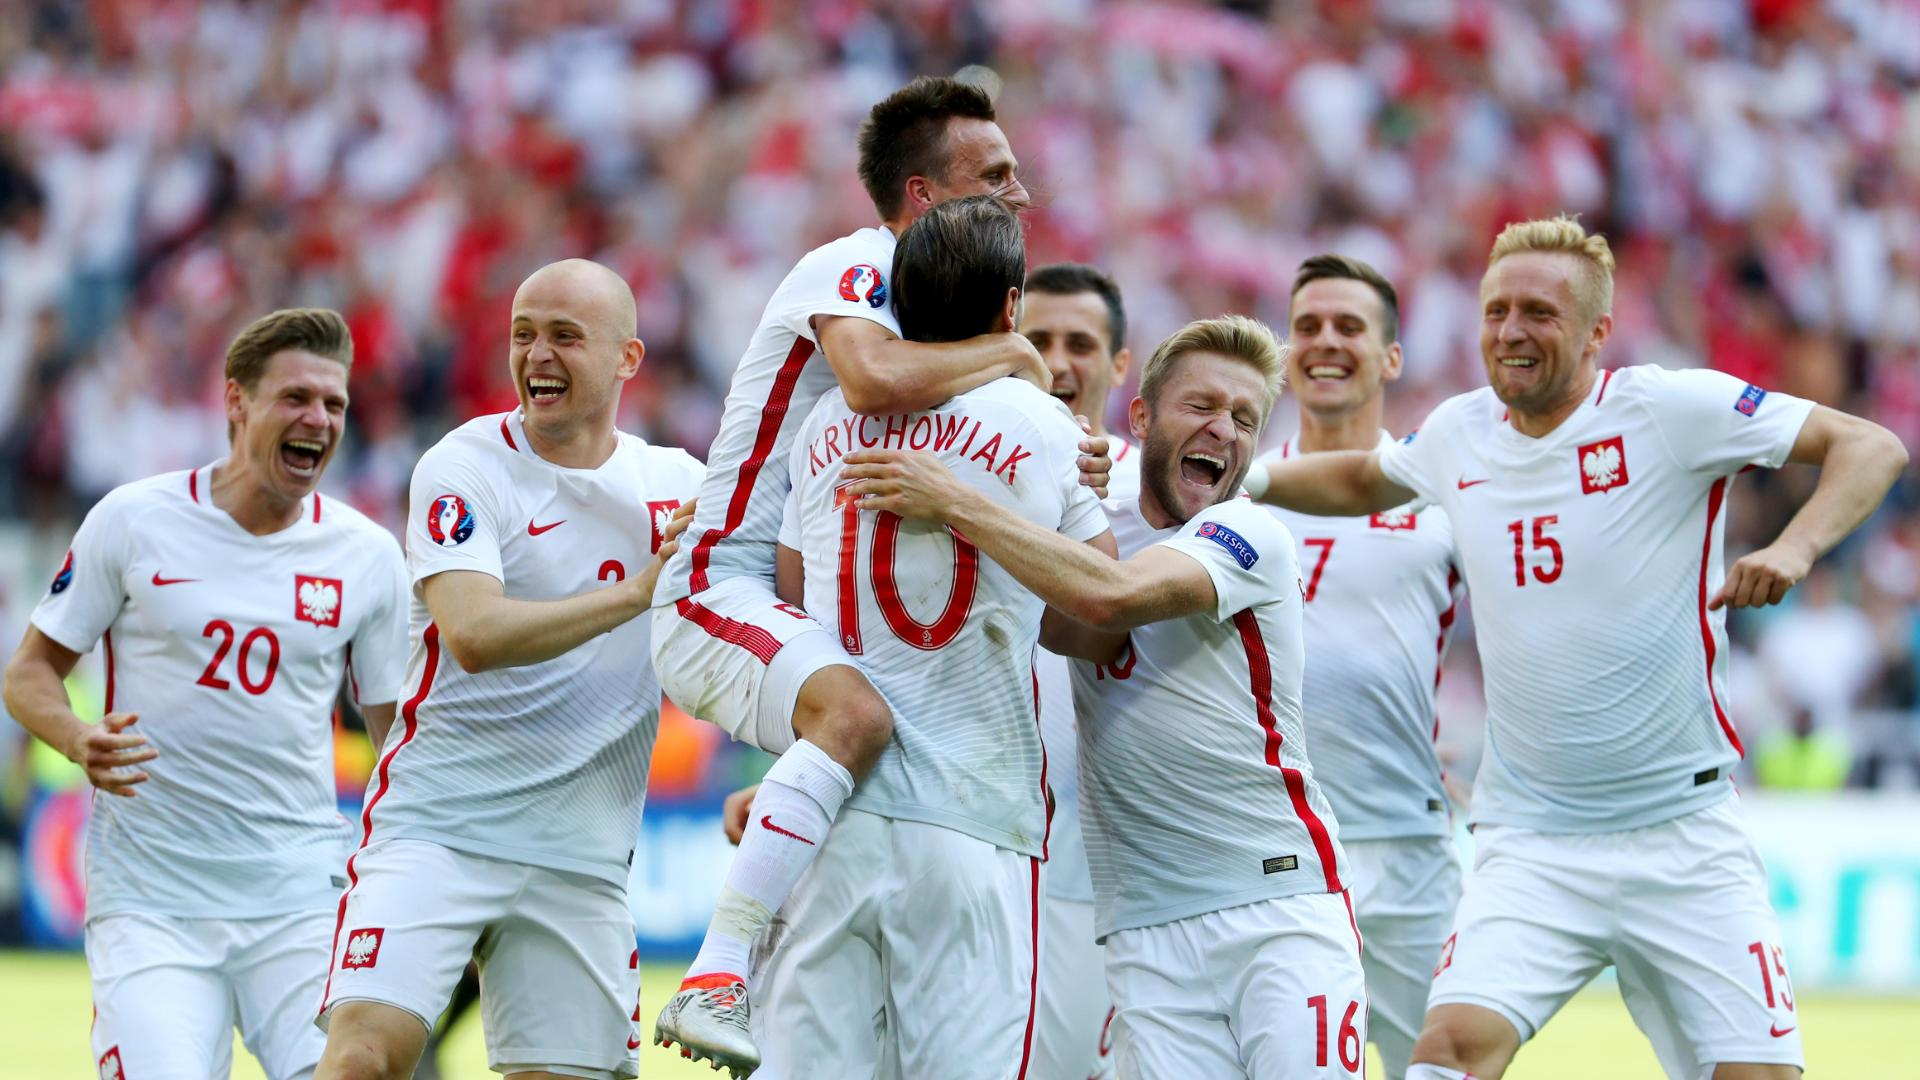 Poland clinches quarterfinal spot